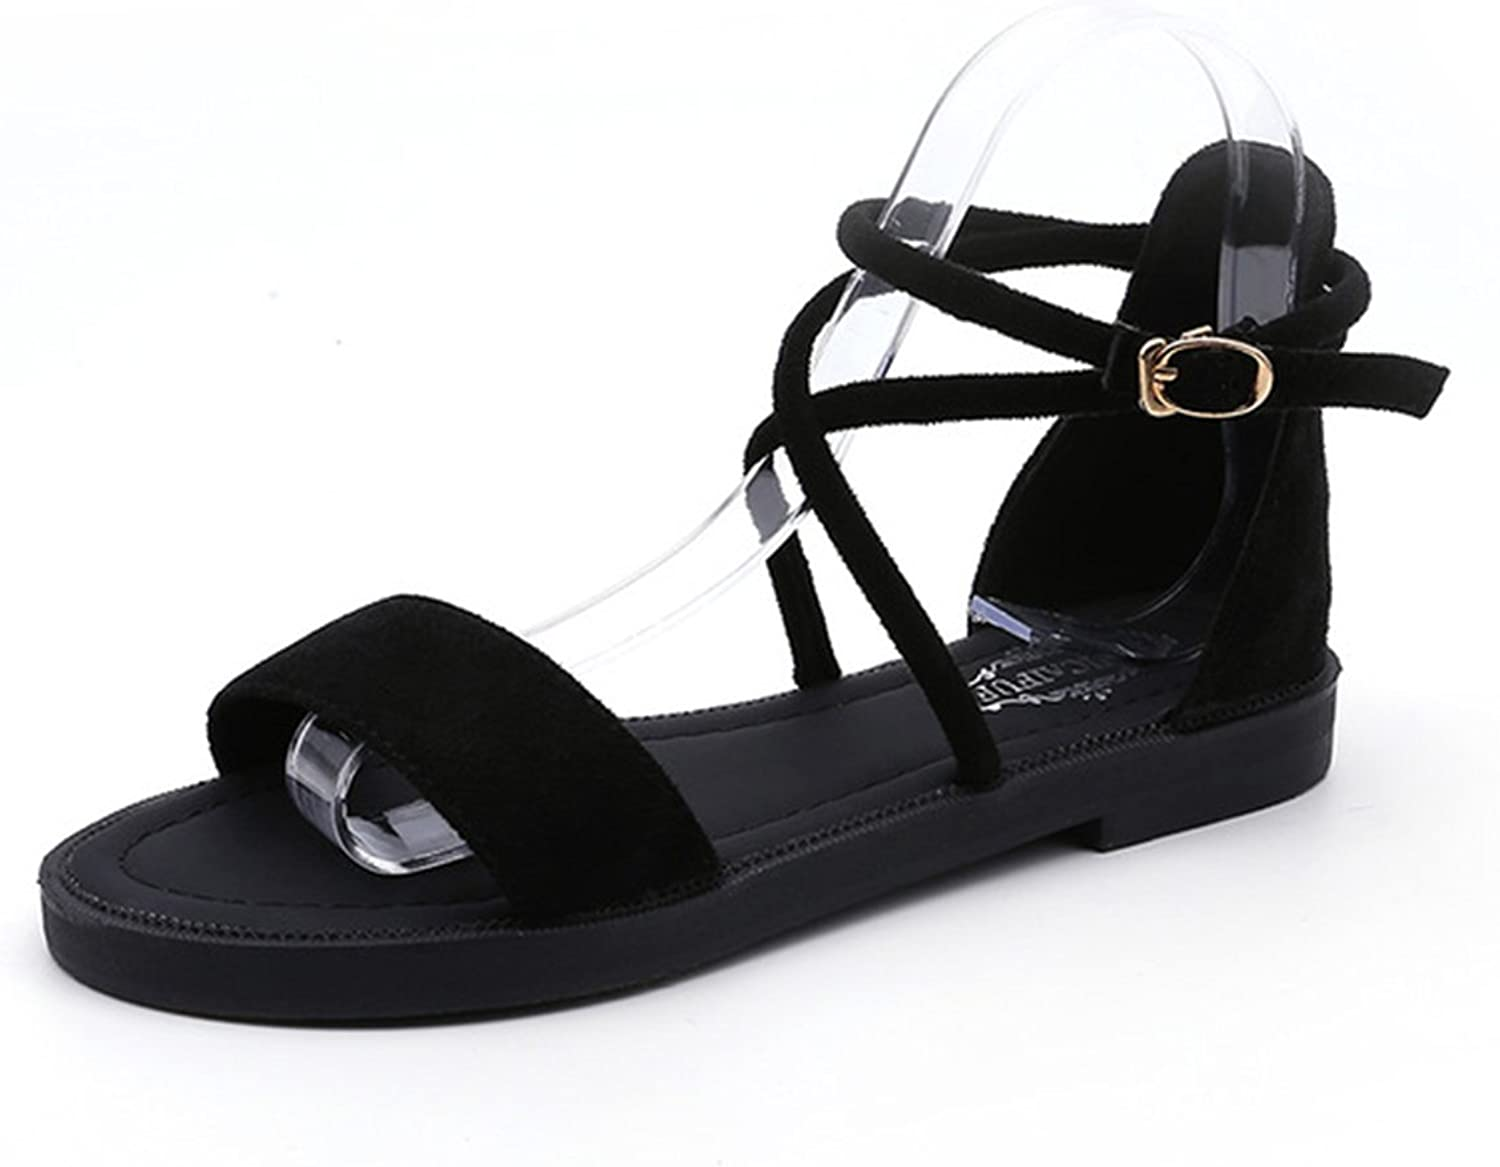 Mageed Women Summer shoes Platform Fashion Women Sandals Occasions Comfortable Female Flats Sandals